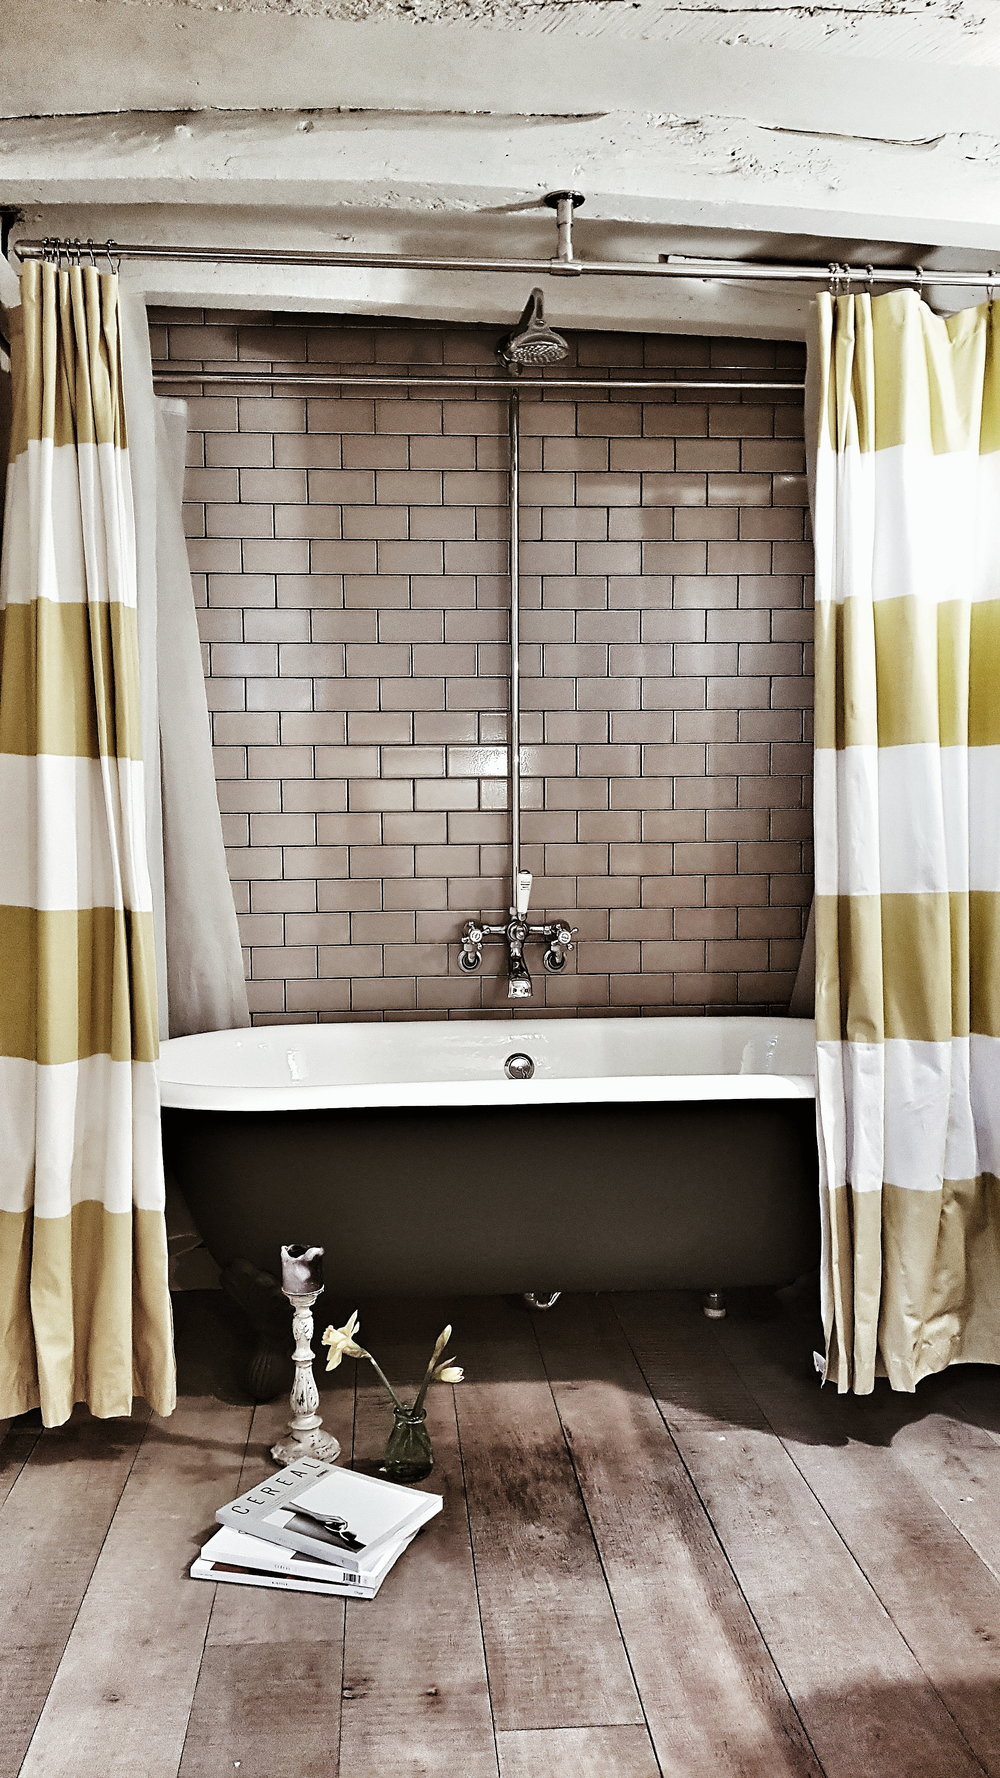 The yellow and white shower curtain that frames the roll top bath